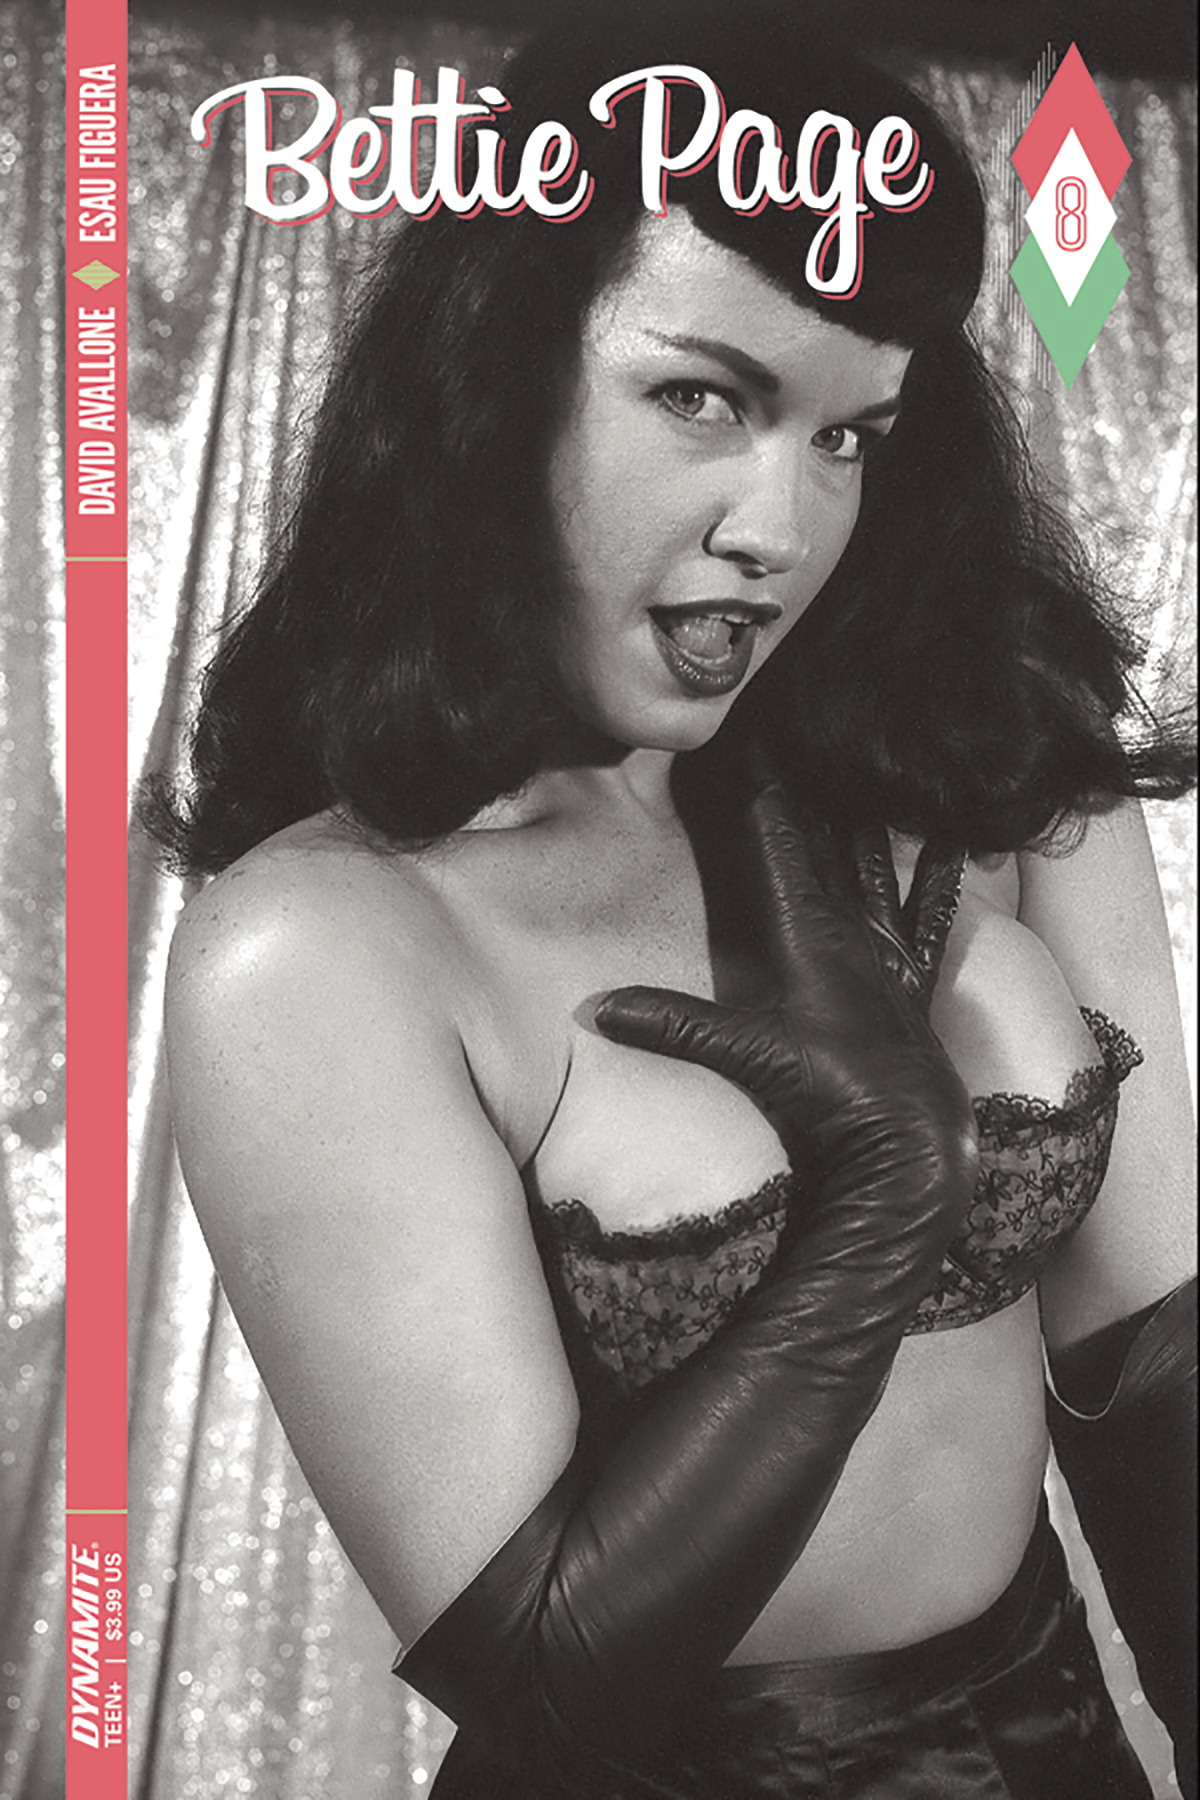 BETTIE PAGE #8 CVR C PHOTO